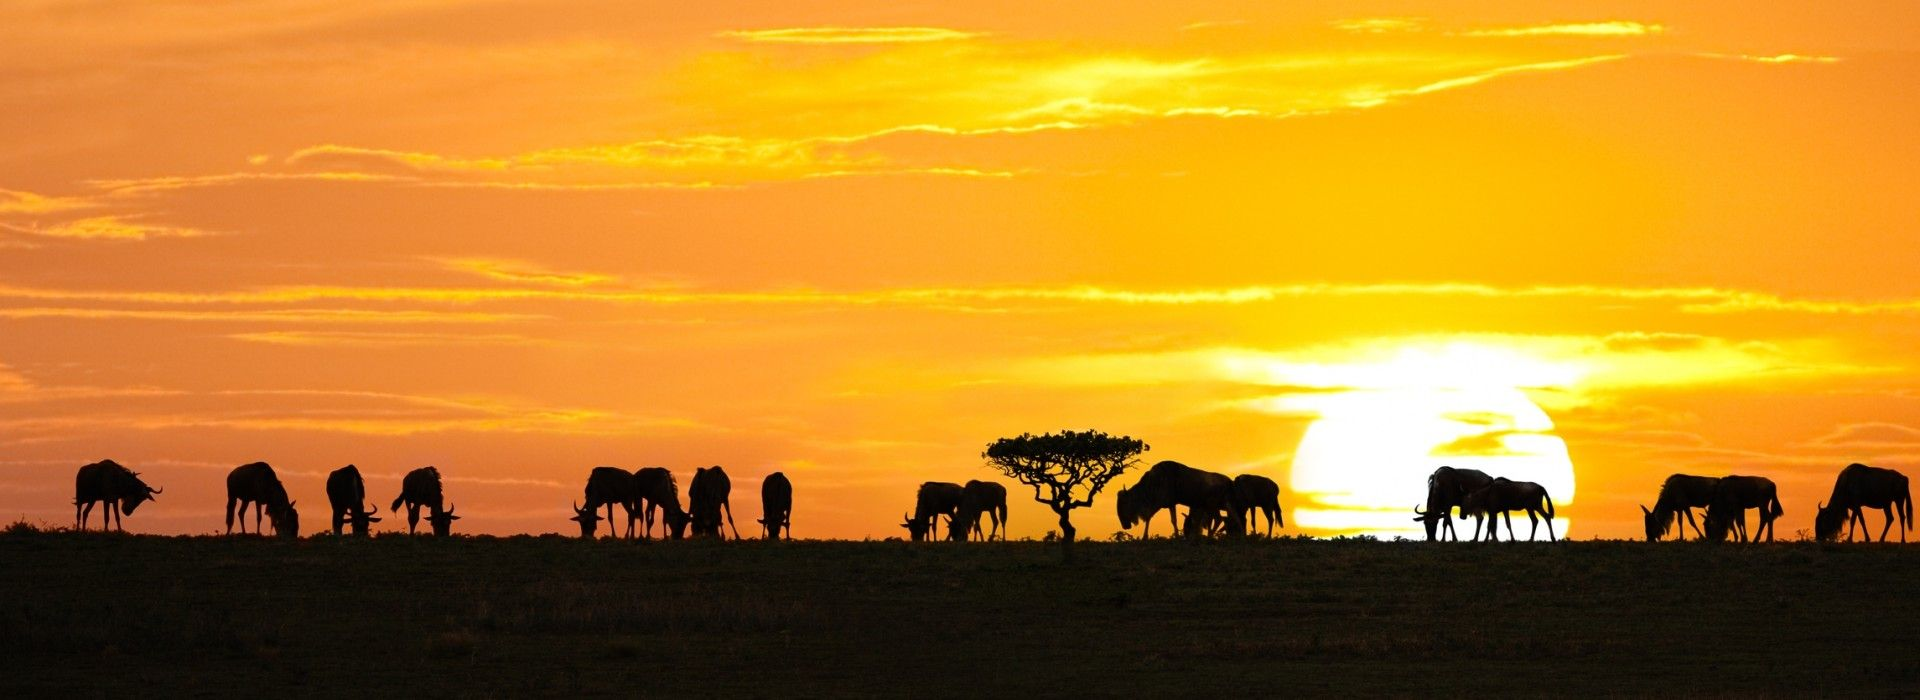 Beach, romance, getaways and relaxation Tours in Ngorongoro Conservation Area